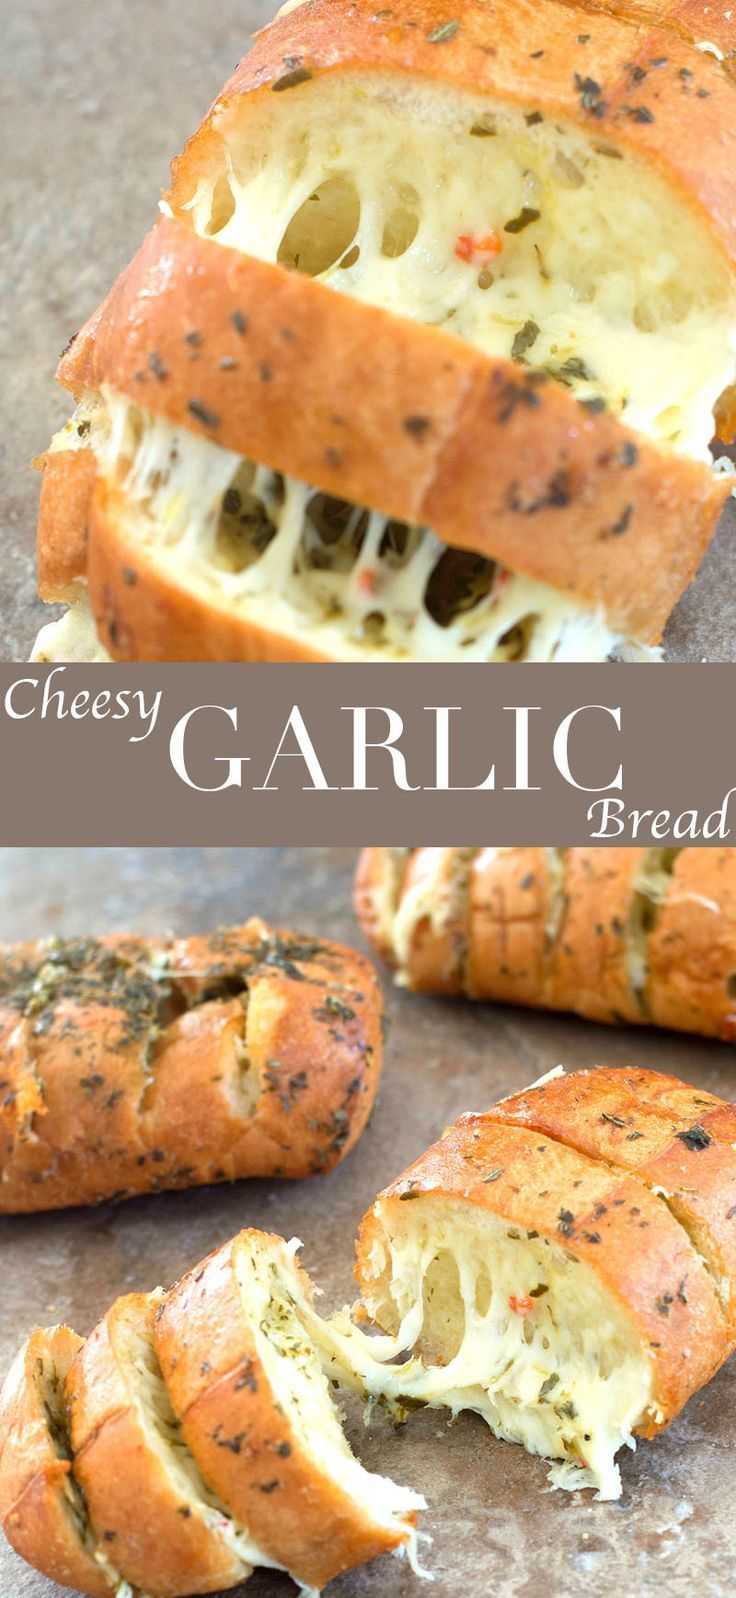 31270 best fast recipes images on pinterest cooking food quick cheesy garlic bread with italian spices forumfinder Image collections